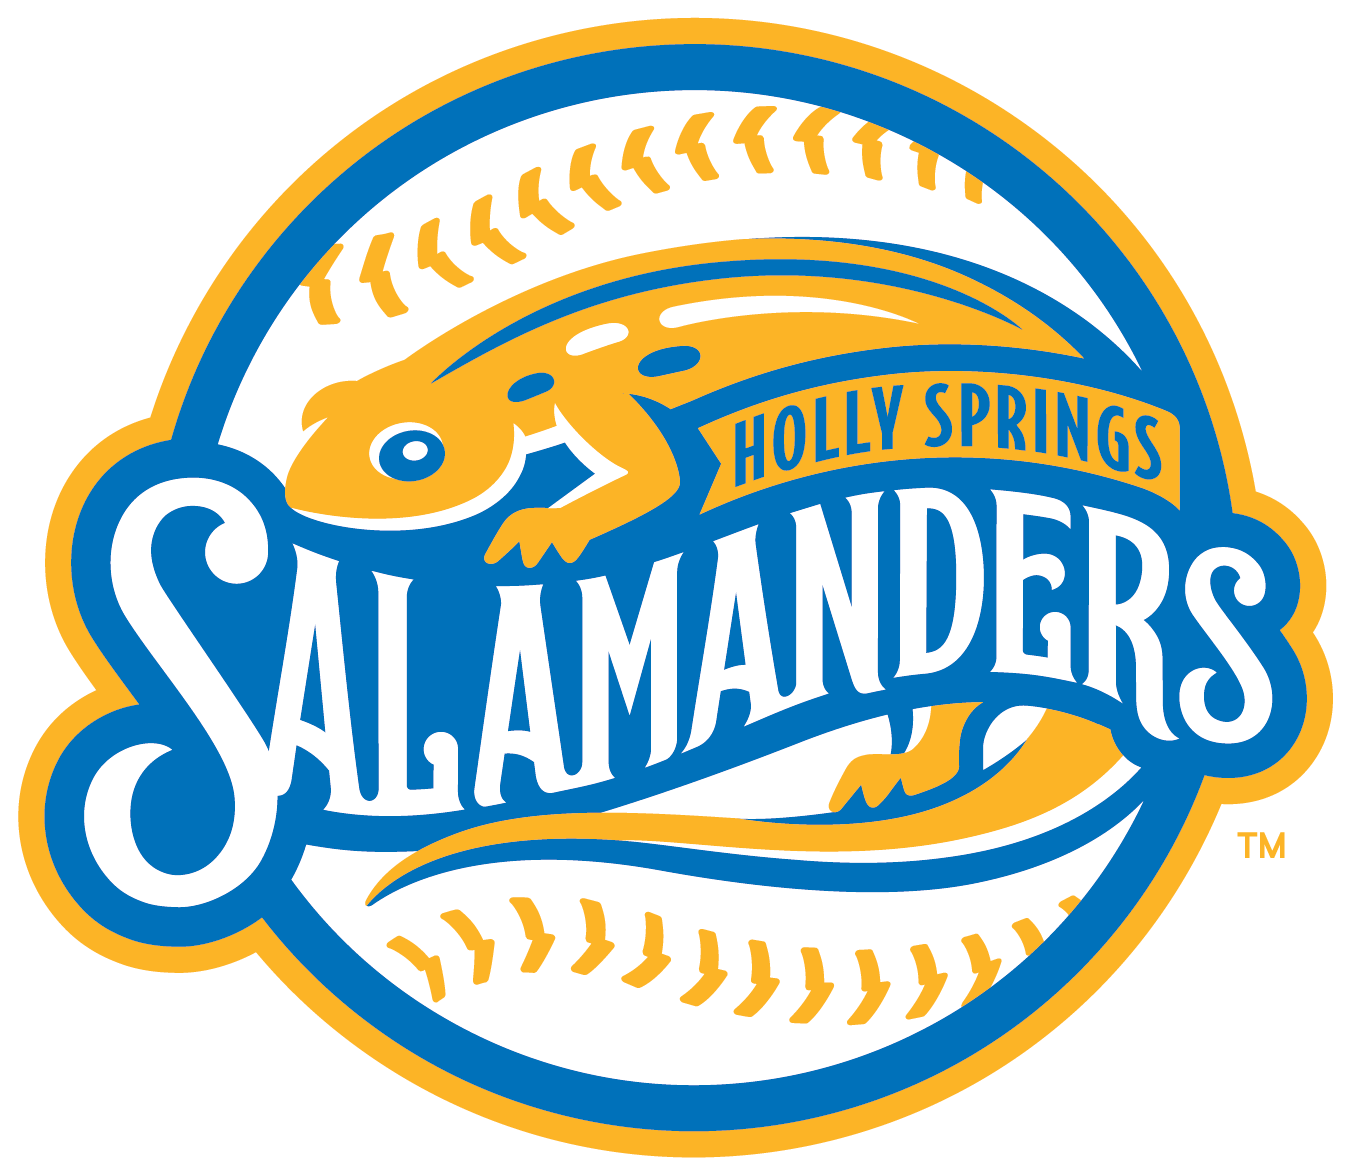 https://www.salamandersbaseball.com/landing/index